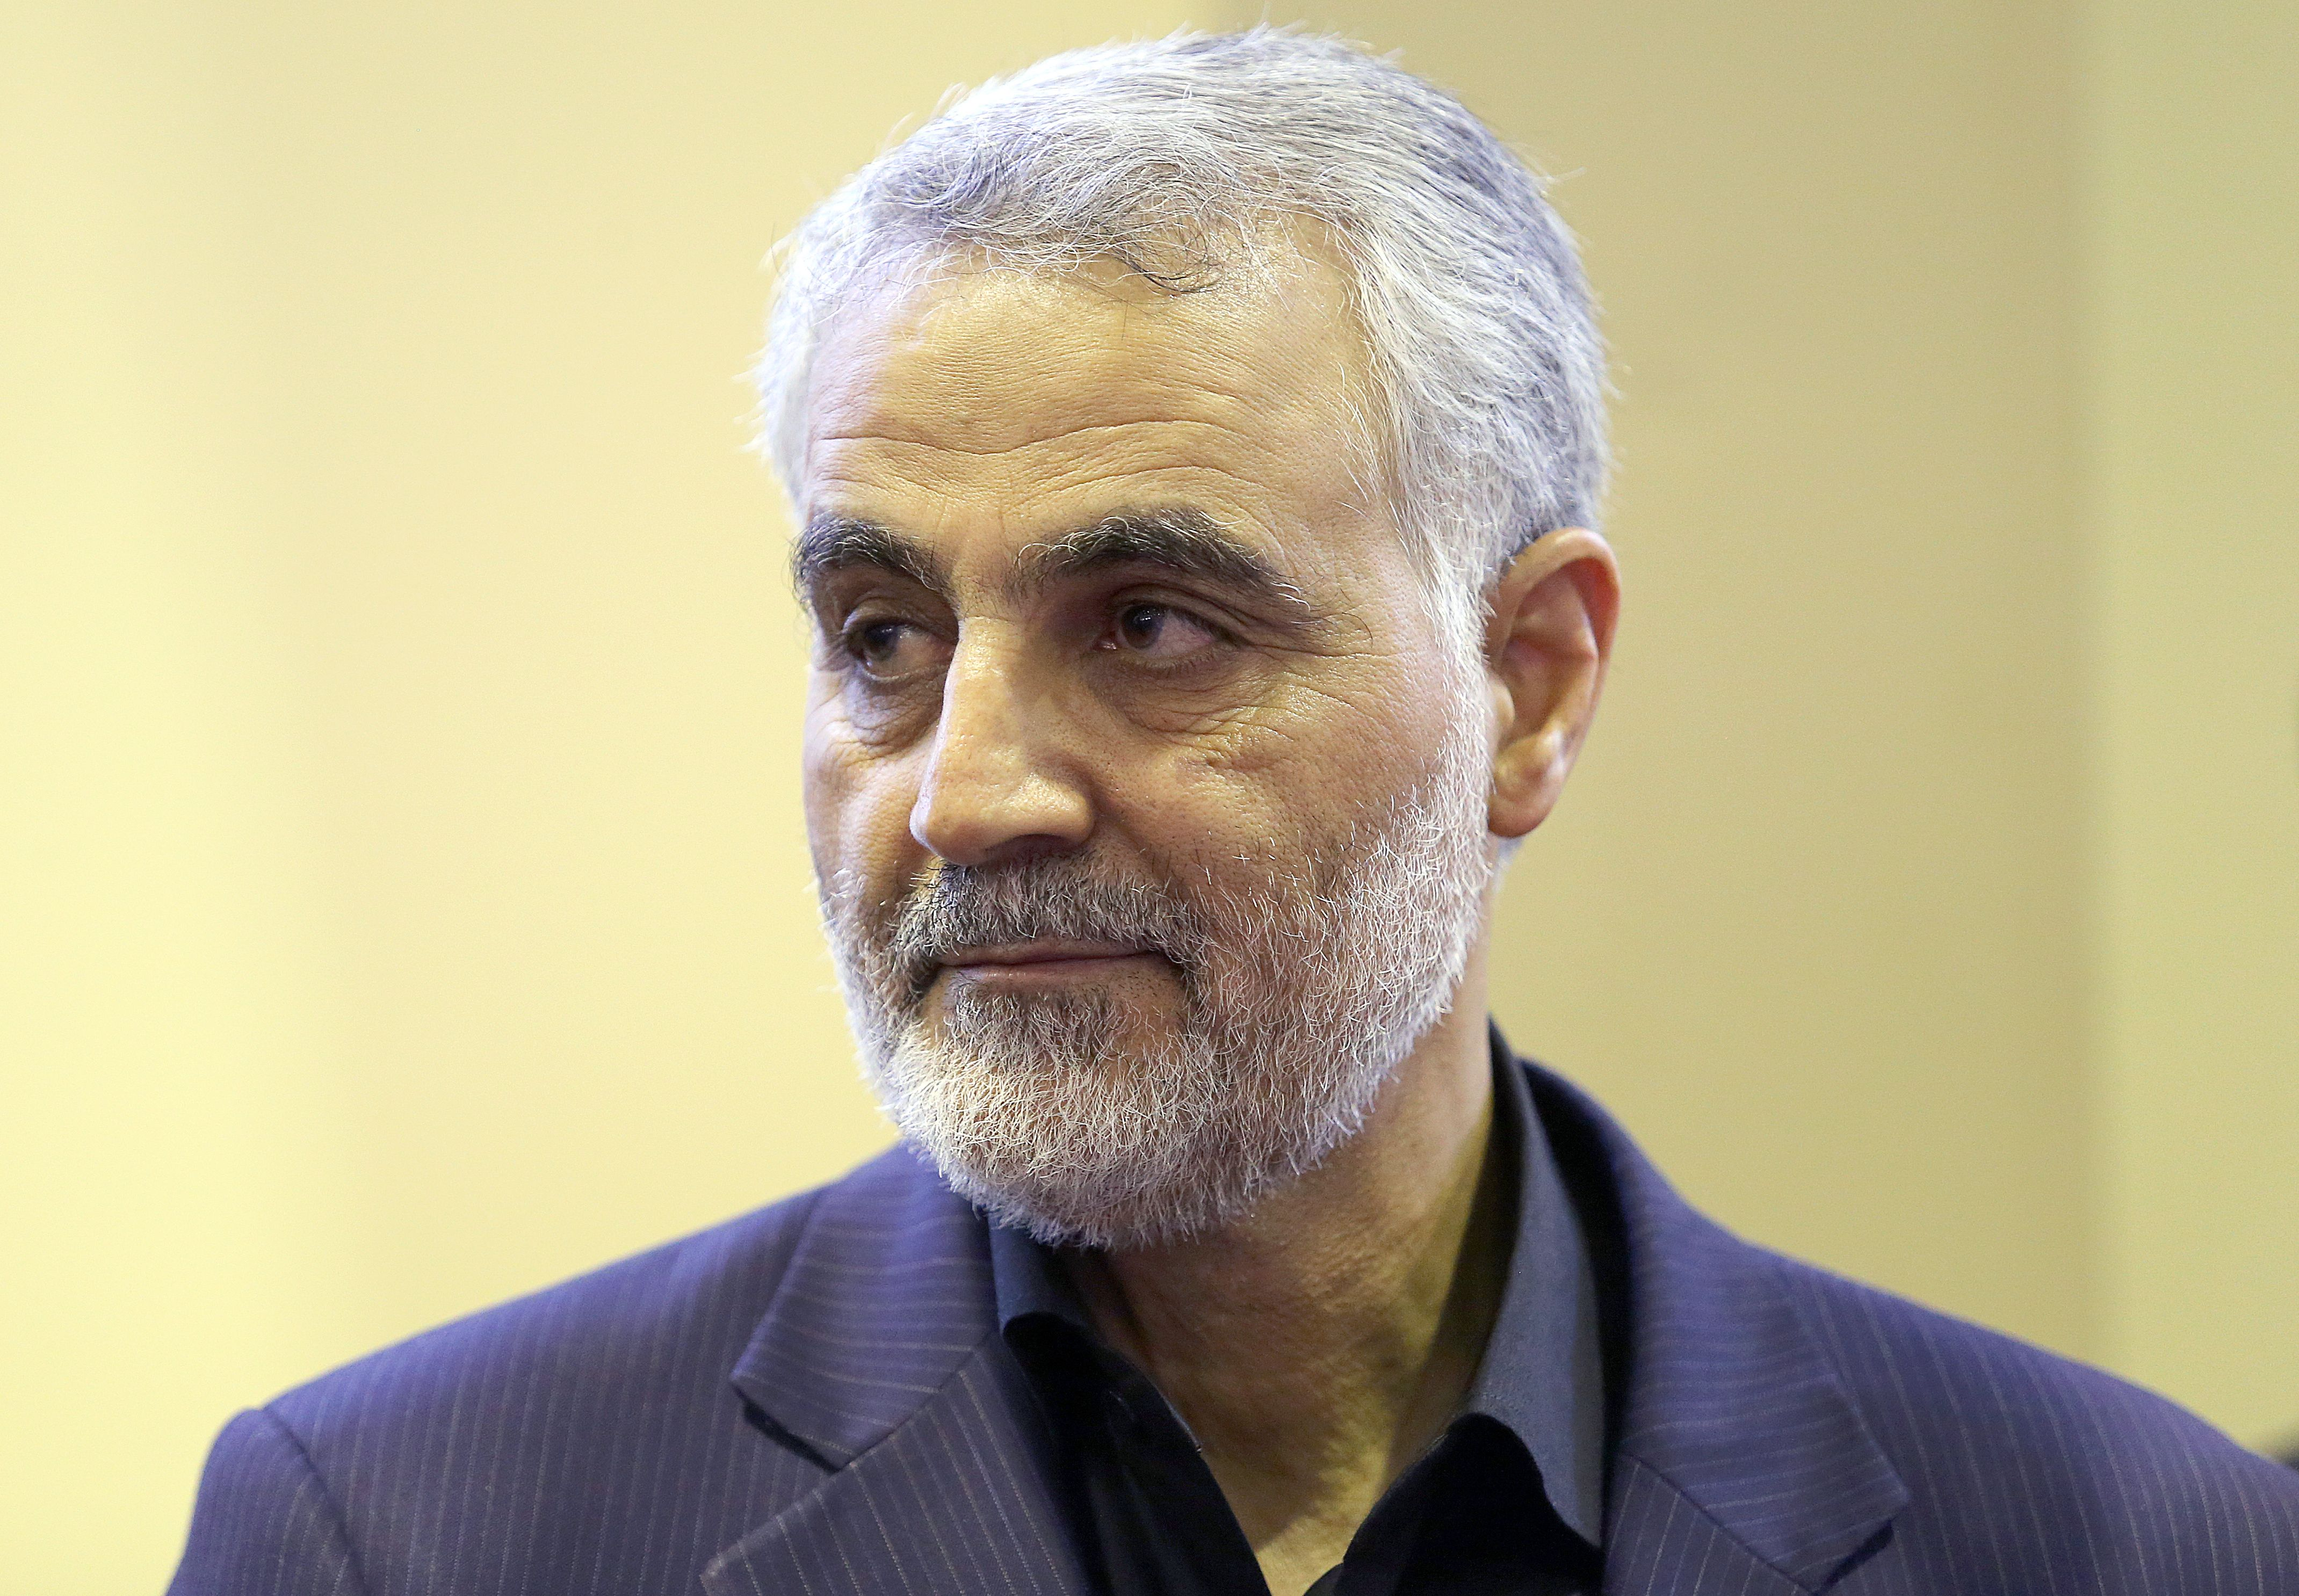 Trump recounts minute-by-minute details of Soleimani strike to donors at Mar-a-Lago